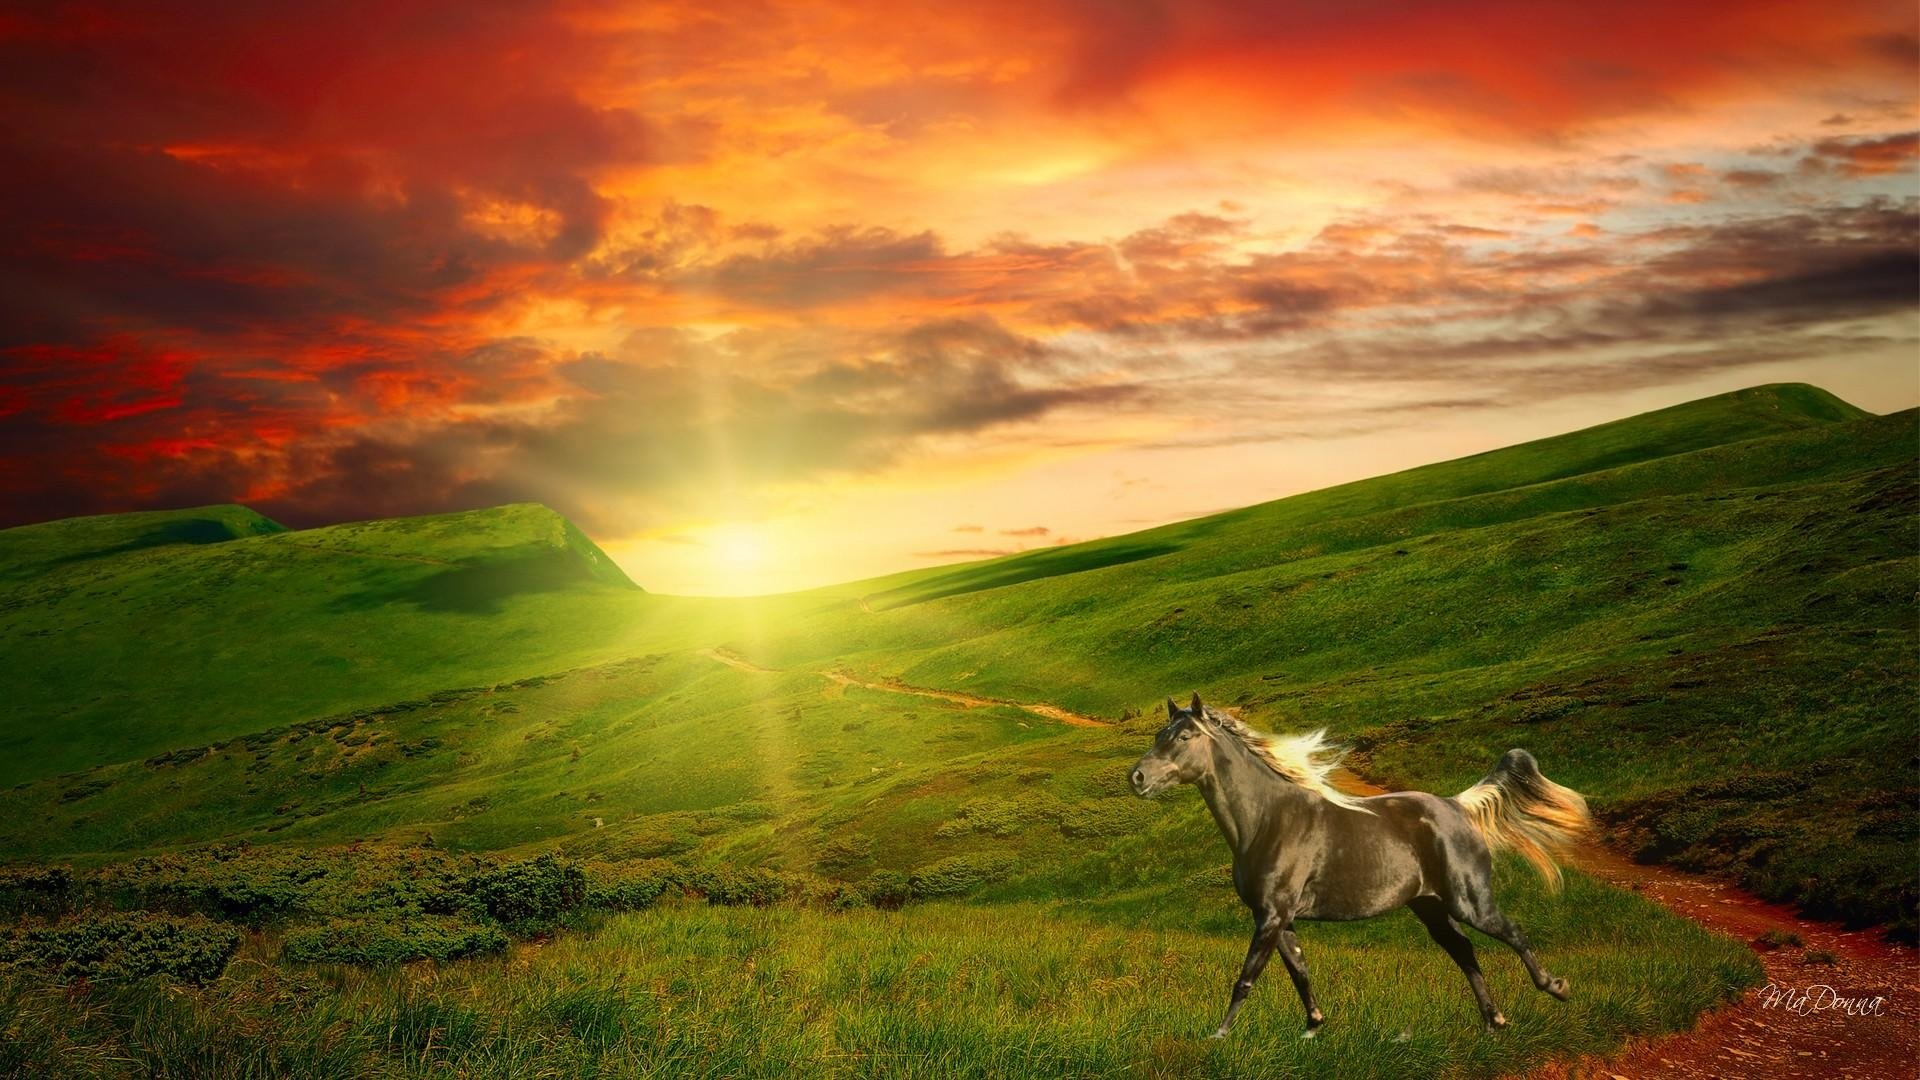 Interfacelift Fall Wallpaper Horse In Field At Sunrise Hd Wallpaper Background Image